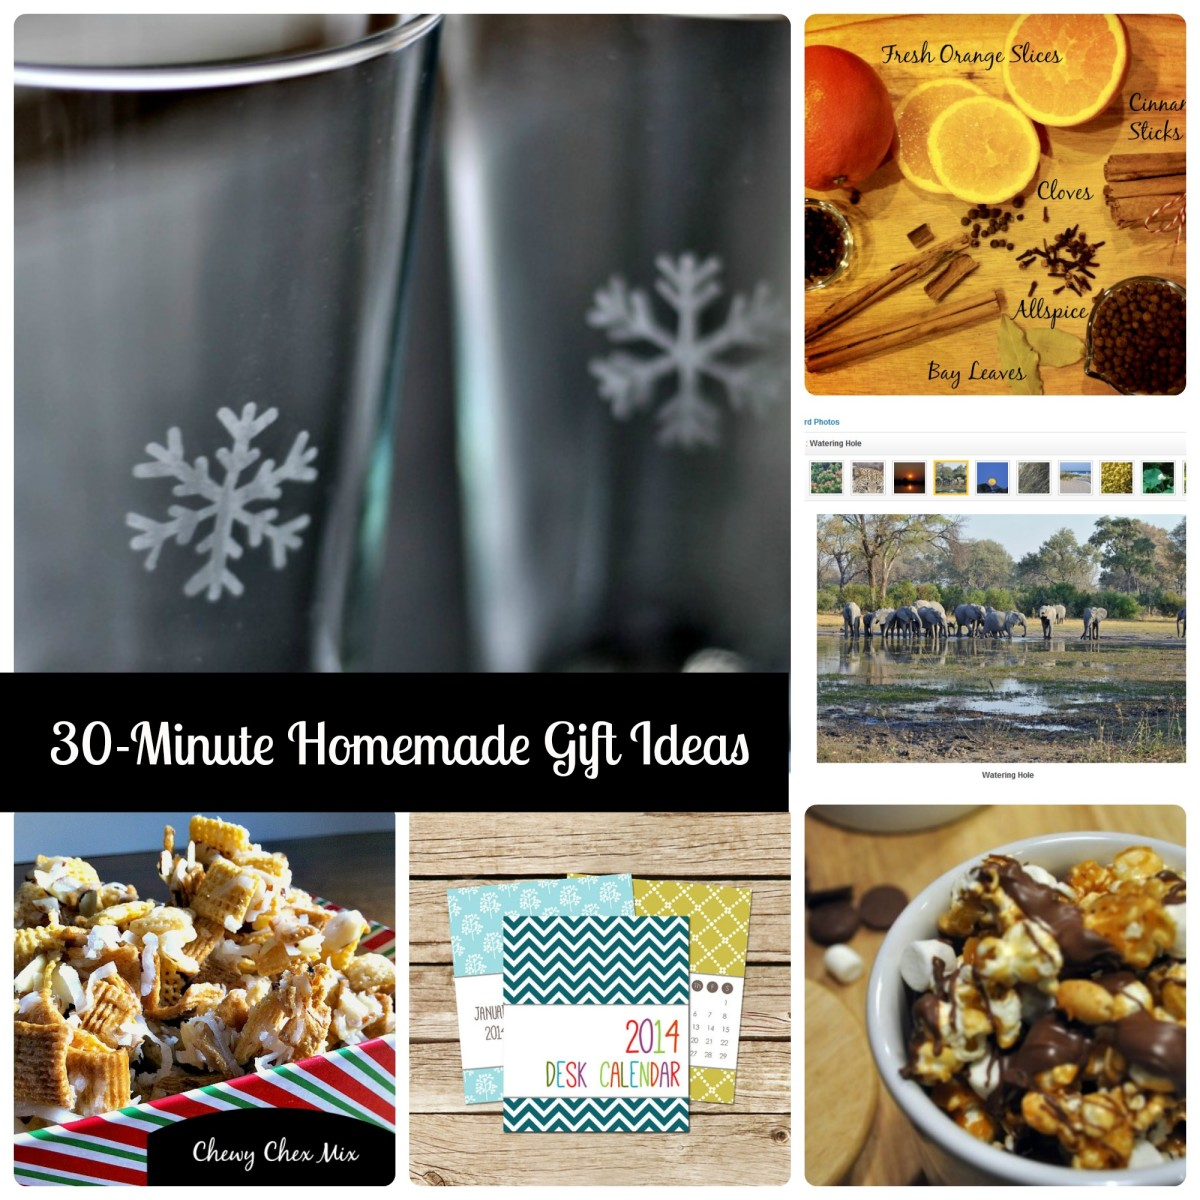 2013 Holiday Gift Guide: 30-Minute Homemade Gift Ideas - TodaysMama.com